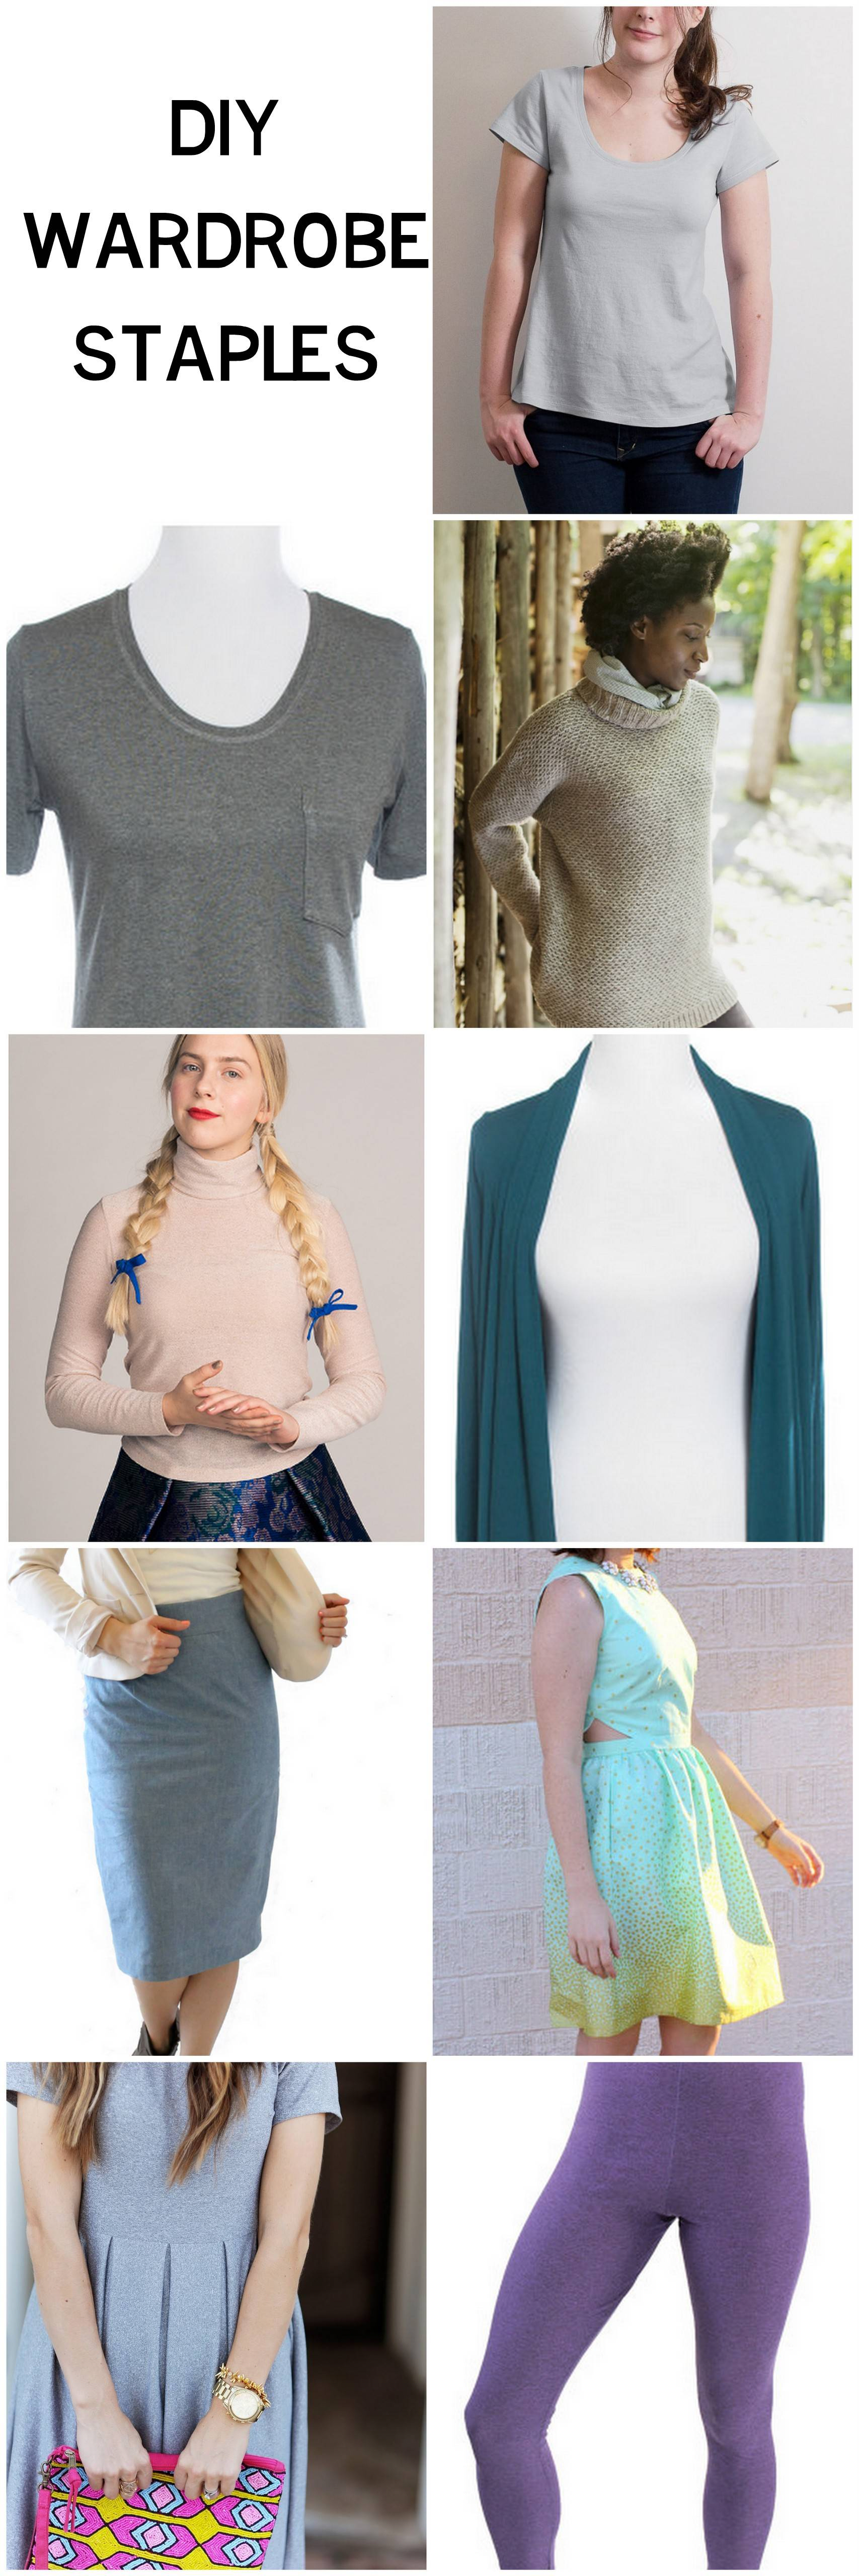 A Round Up of great wardrobe staples and the perfect sewing pattern